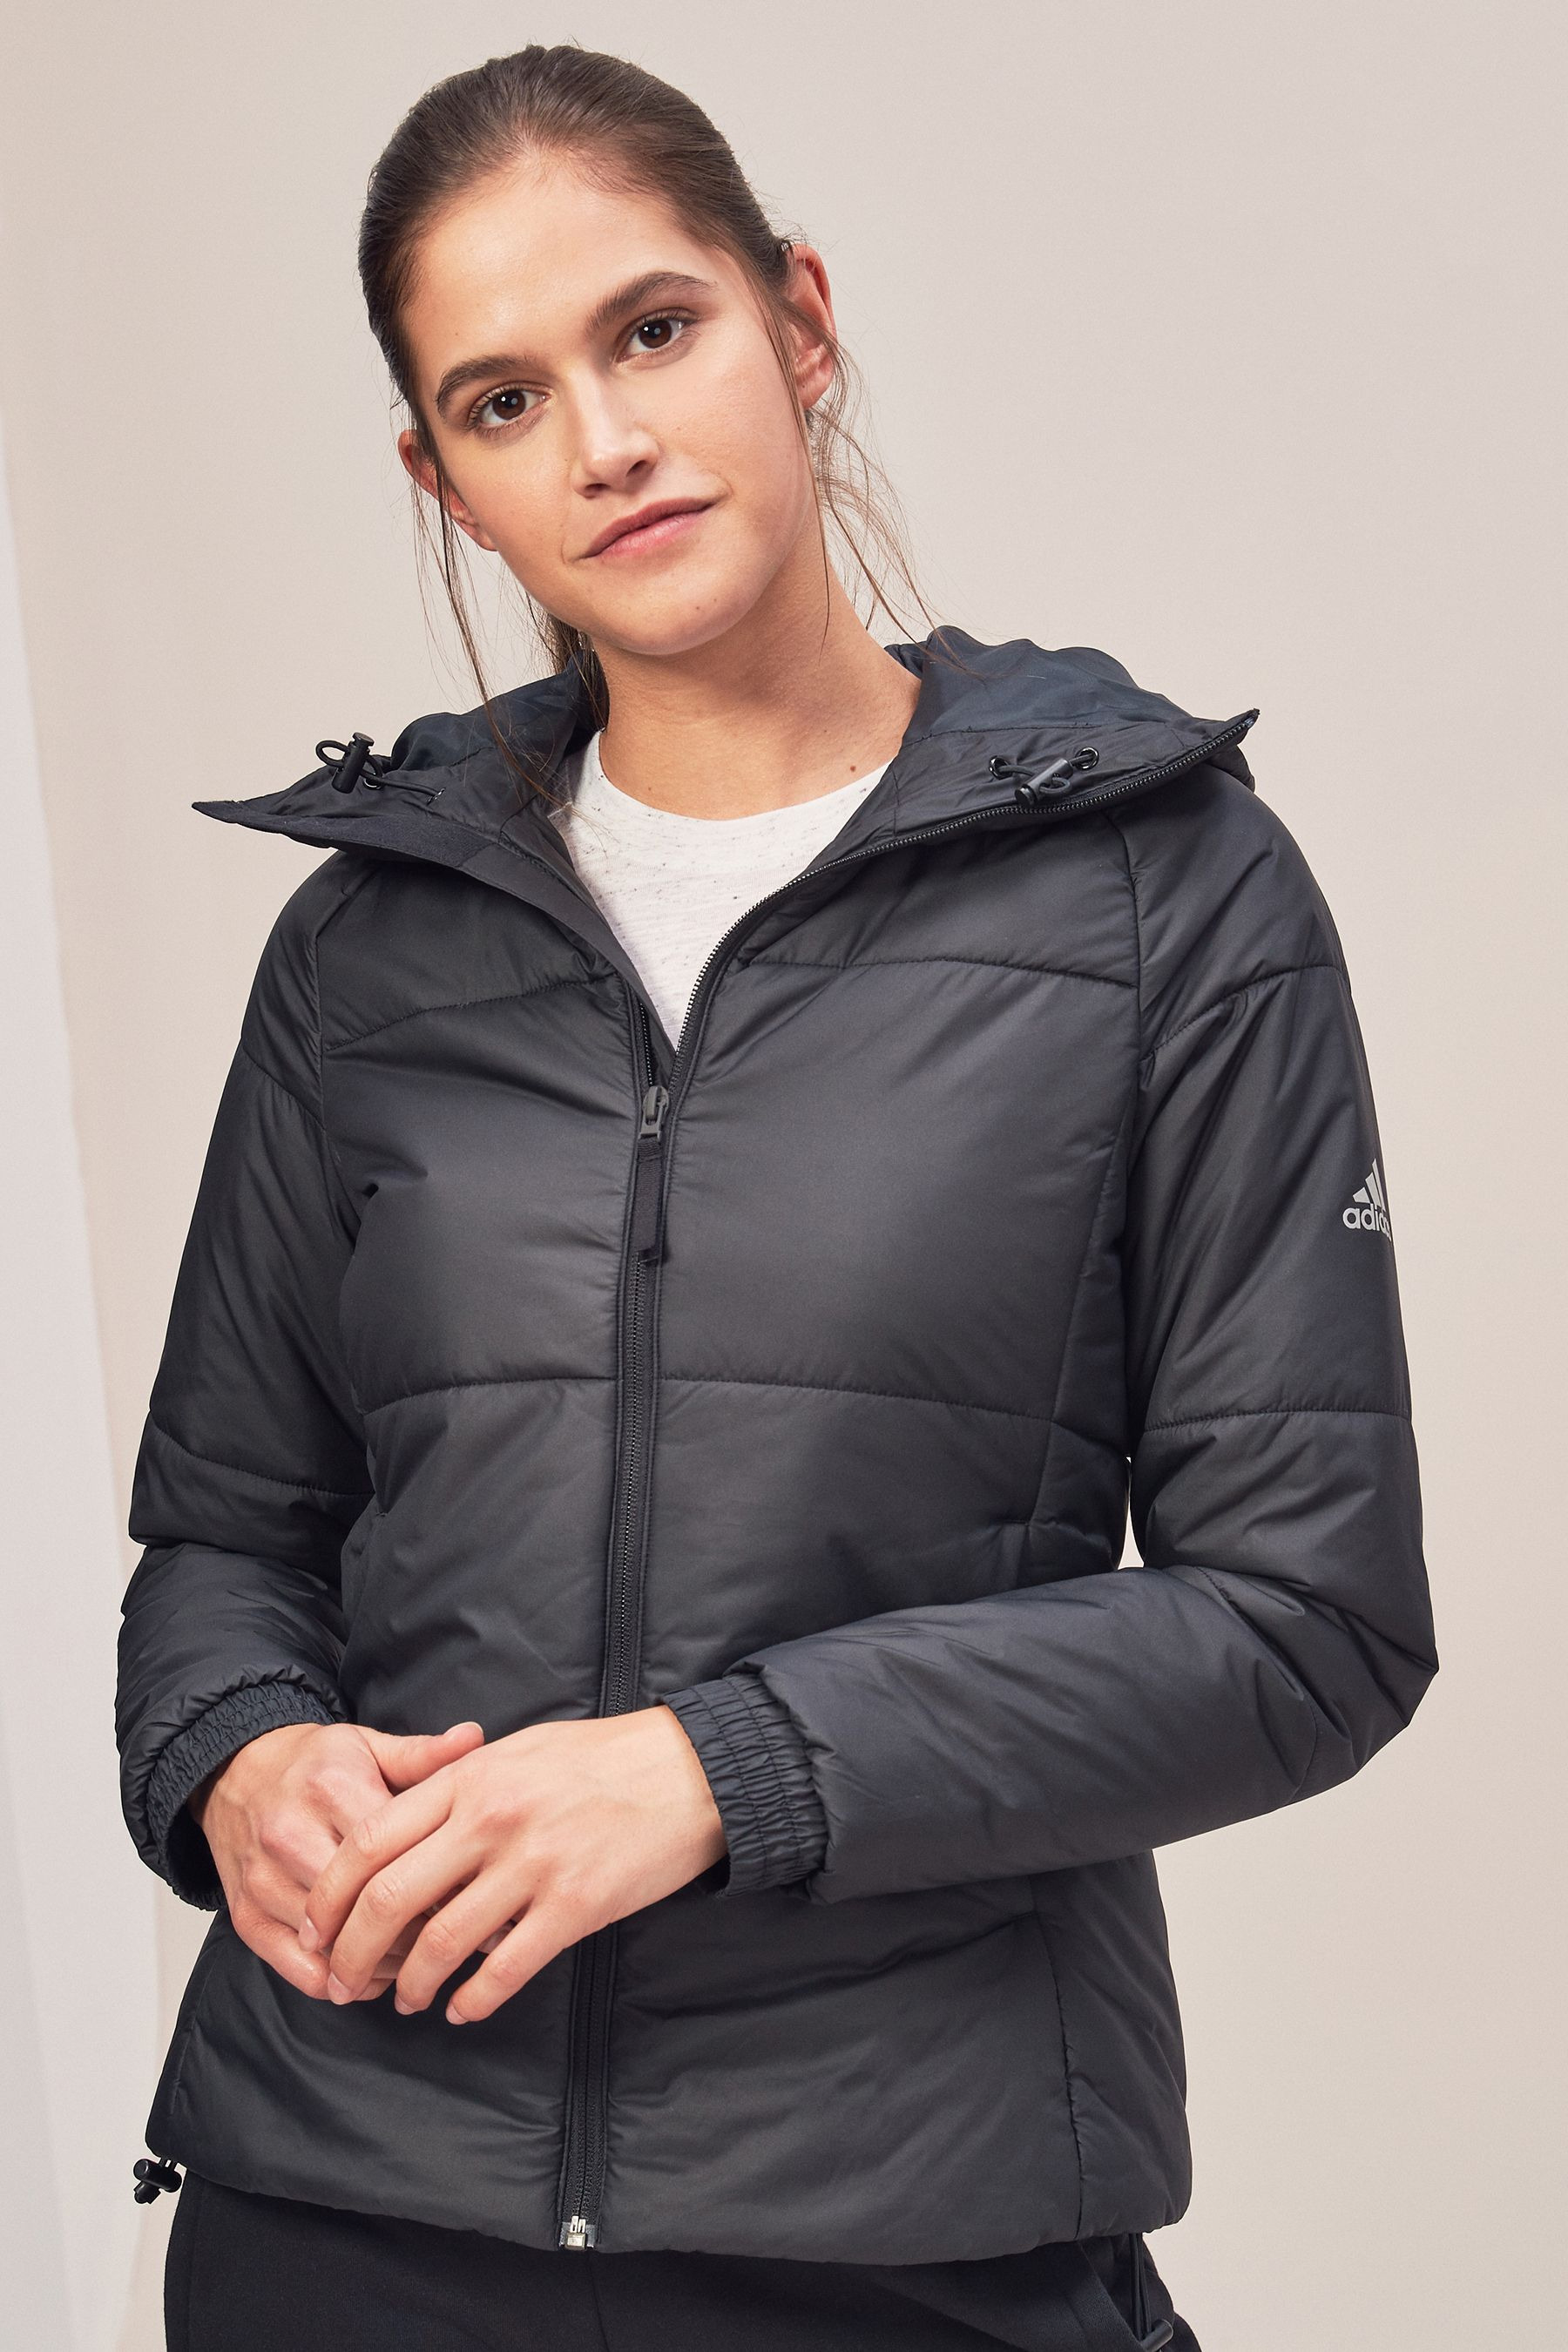 2a0010c3e4ca Womens adidas Padded Jacket - Black